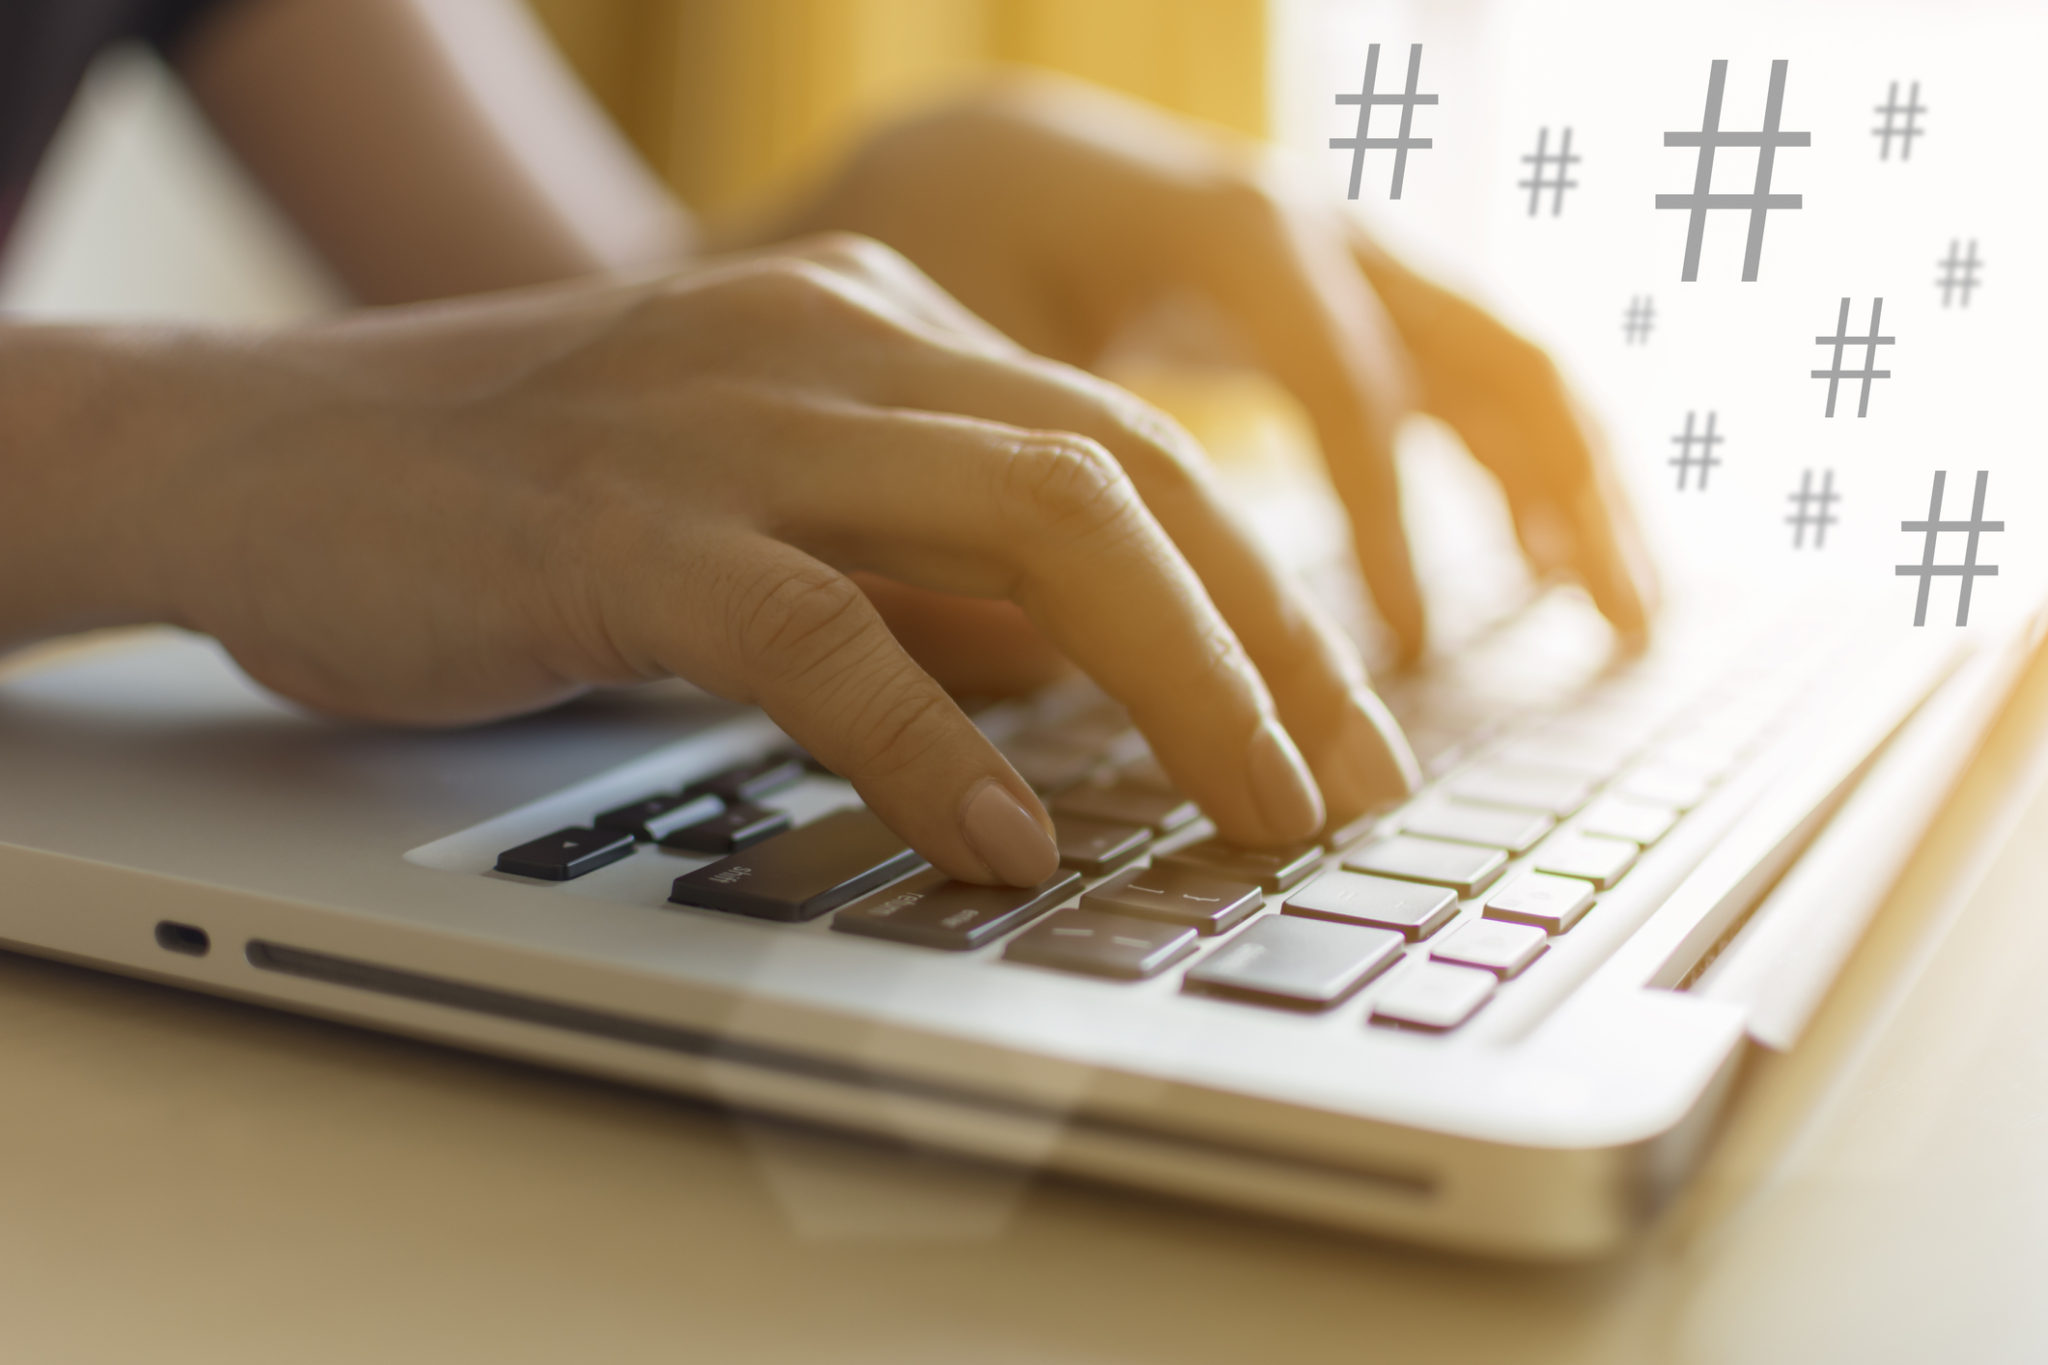 Hashtags on a laptop